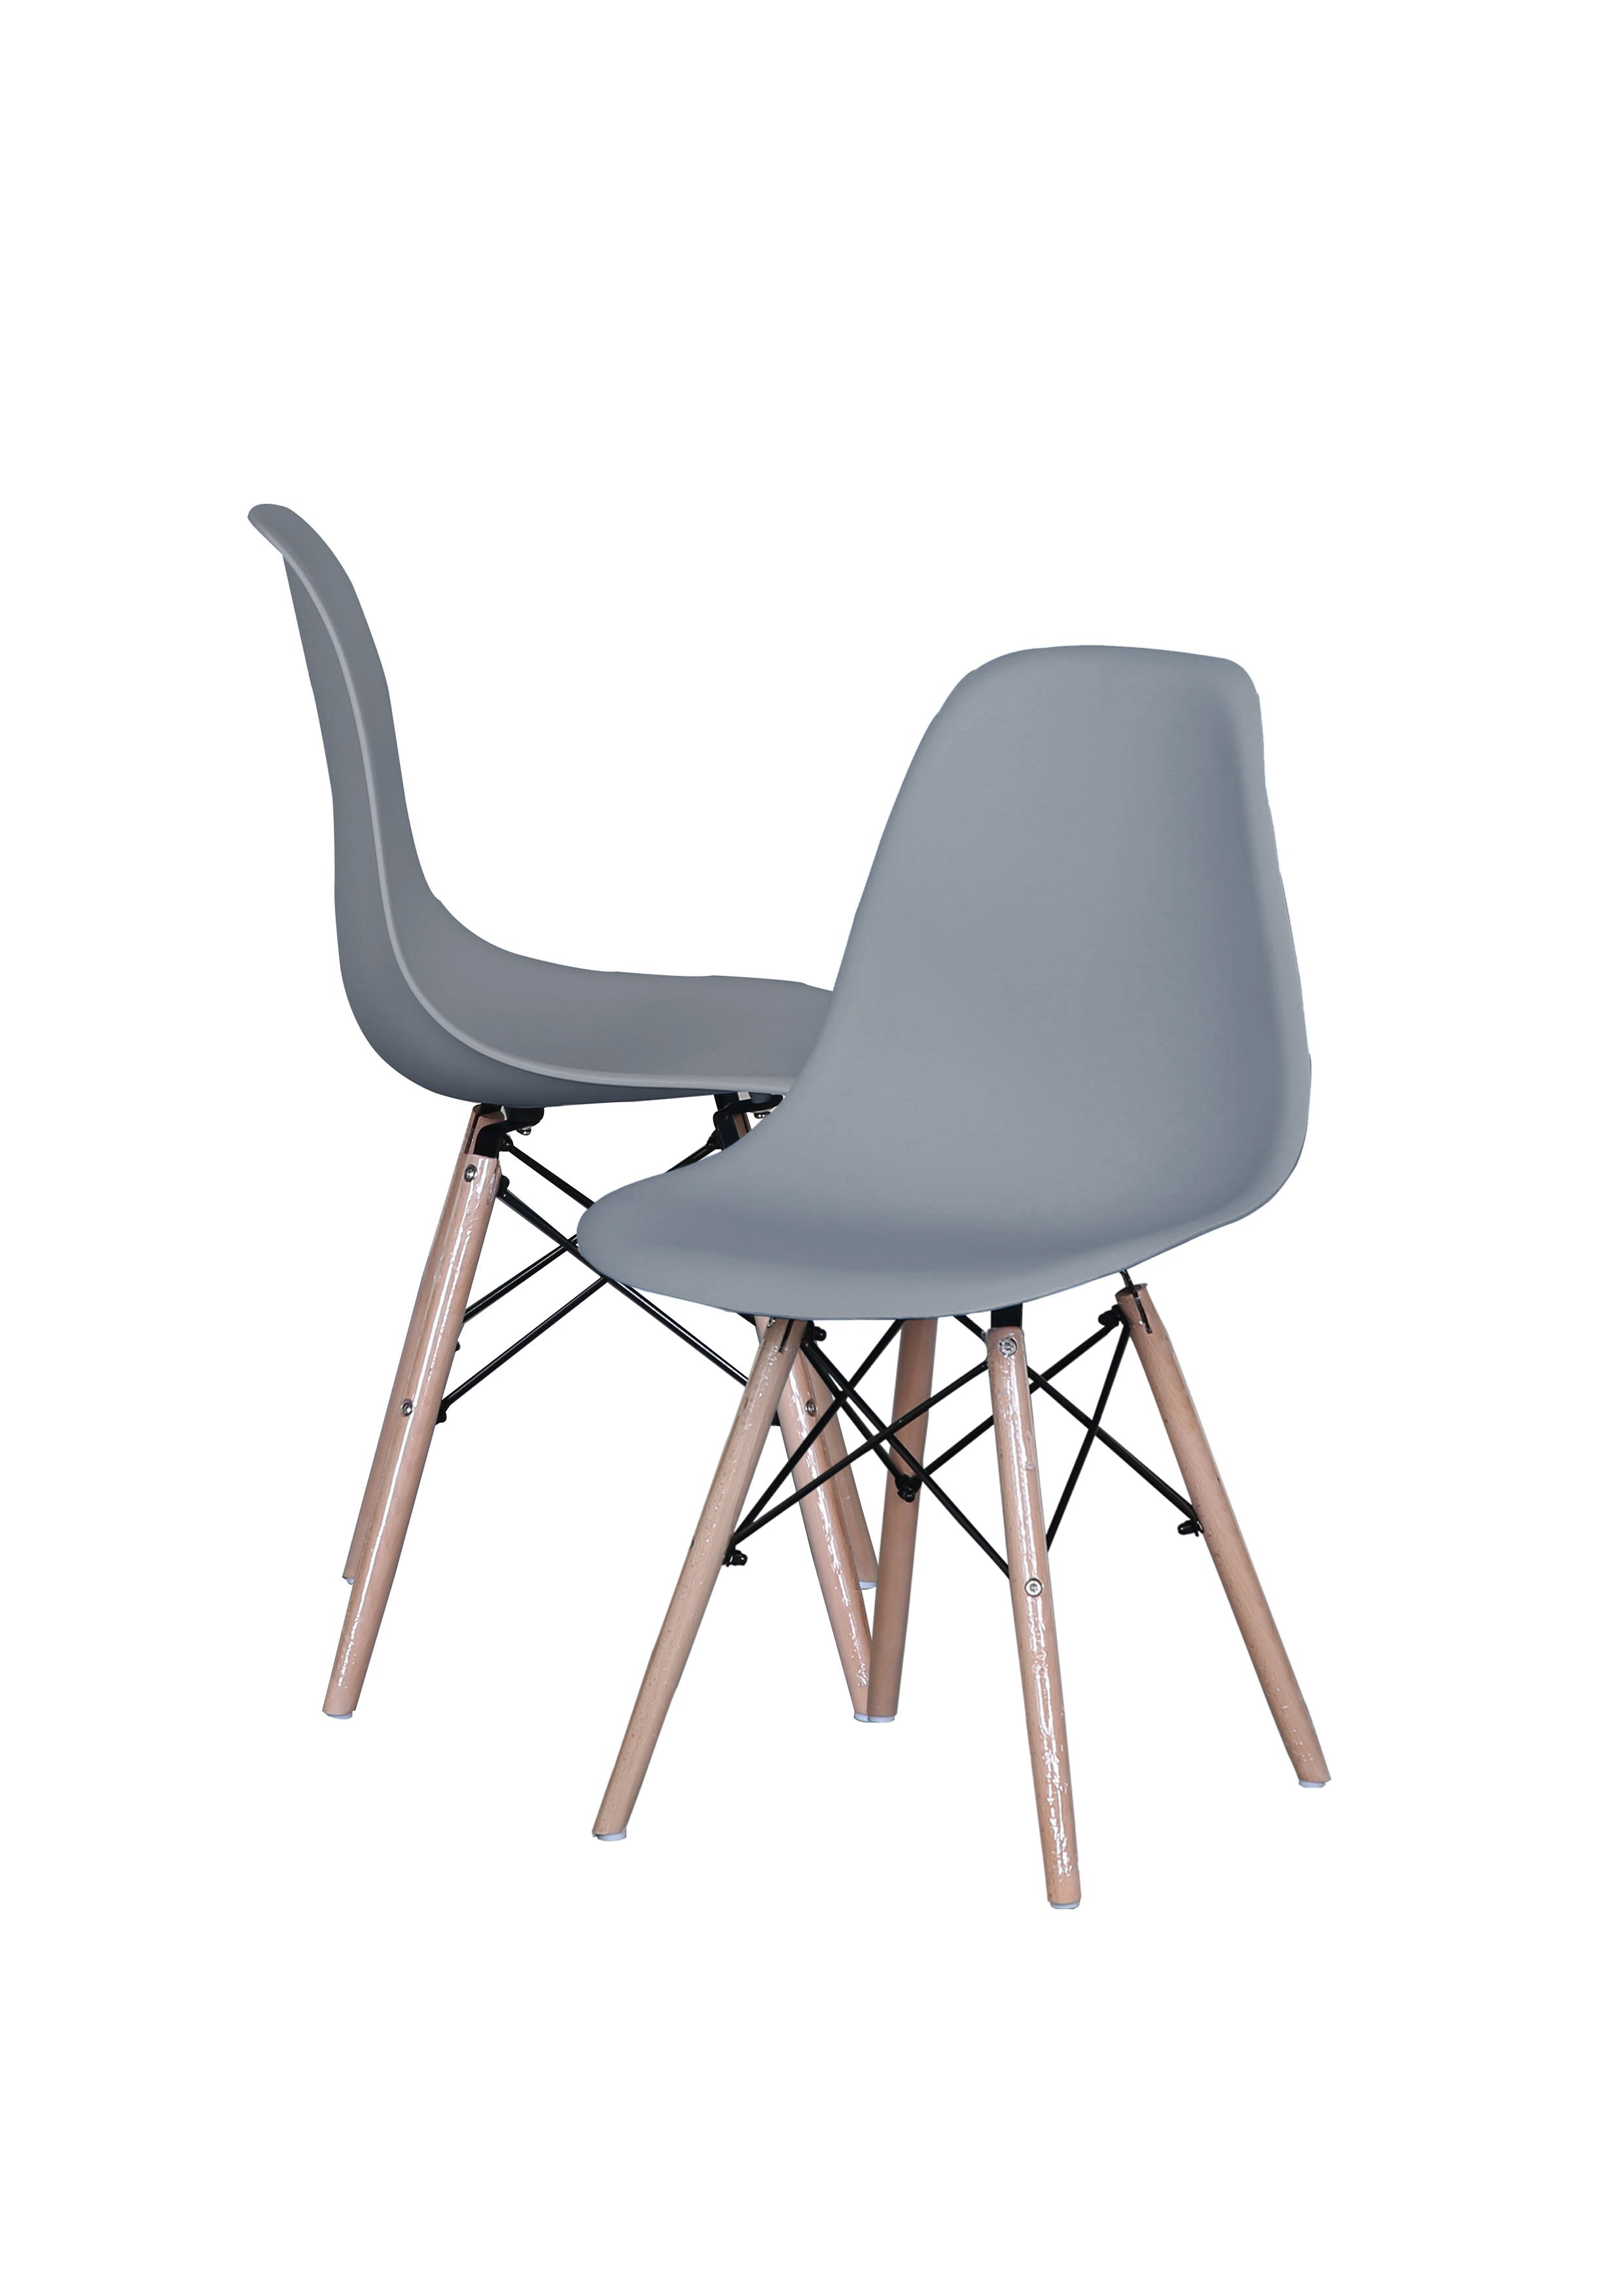 Ray Set Of 2 Modern Chairs